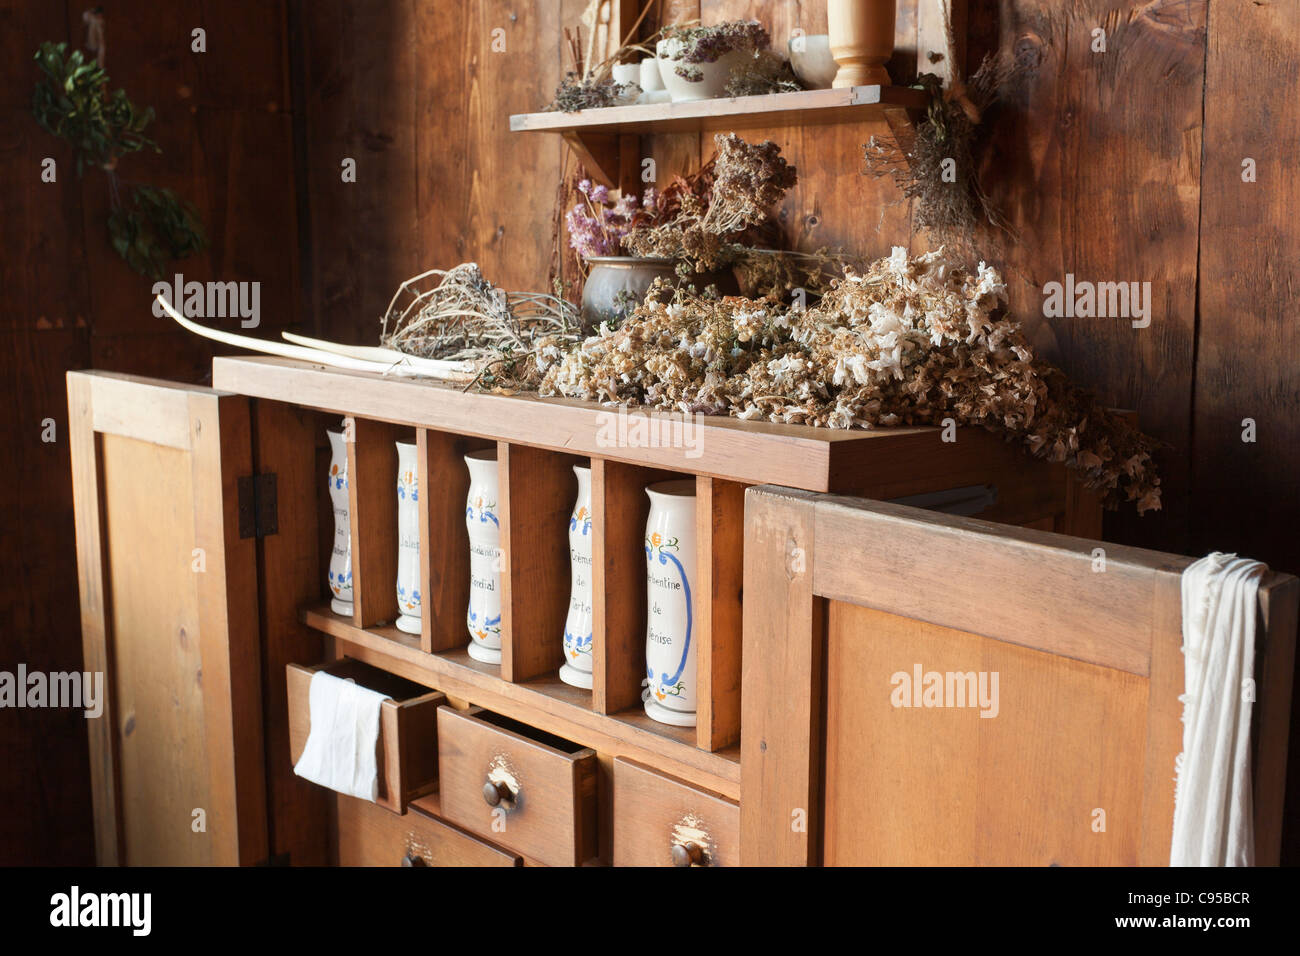 Apothecary's stand at Port Royal. The reconstructed Port Royal Habitation built in the early 1600s - Stock Image